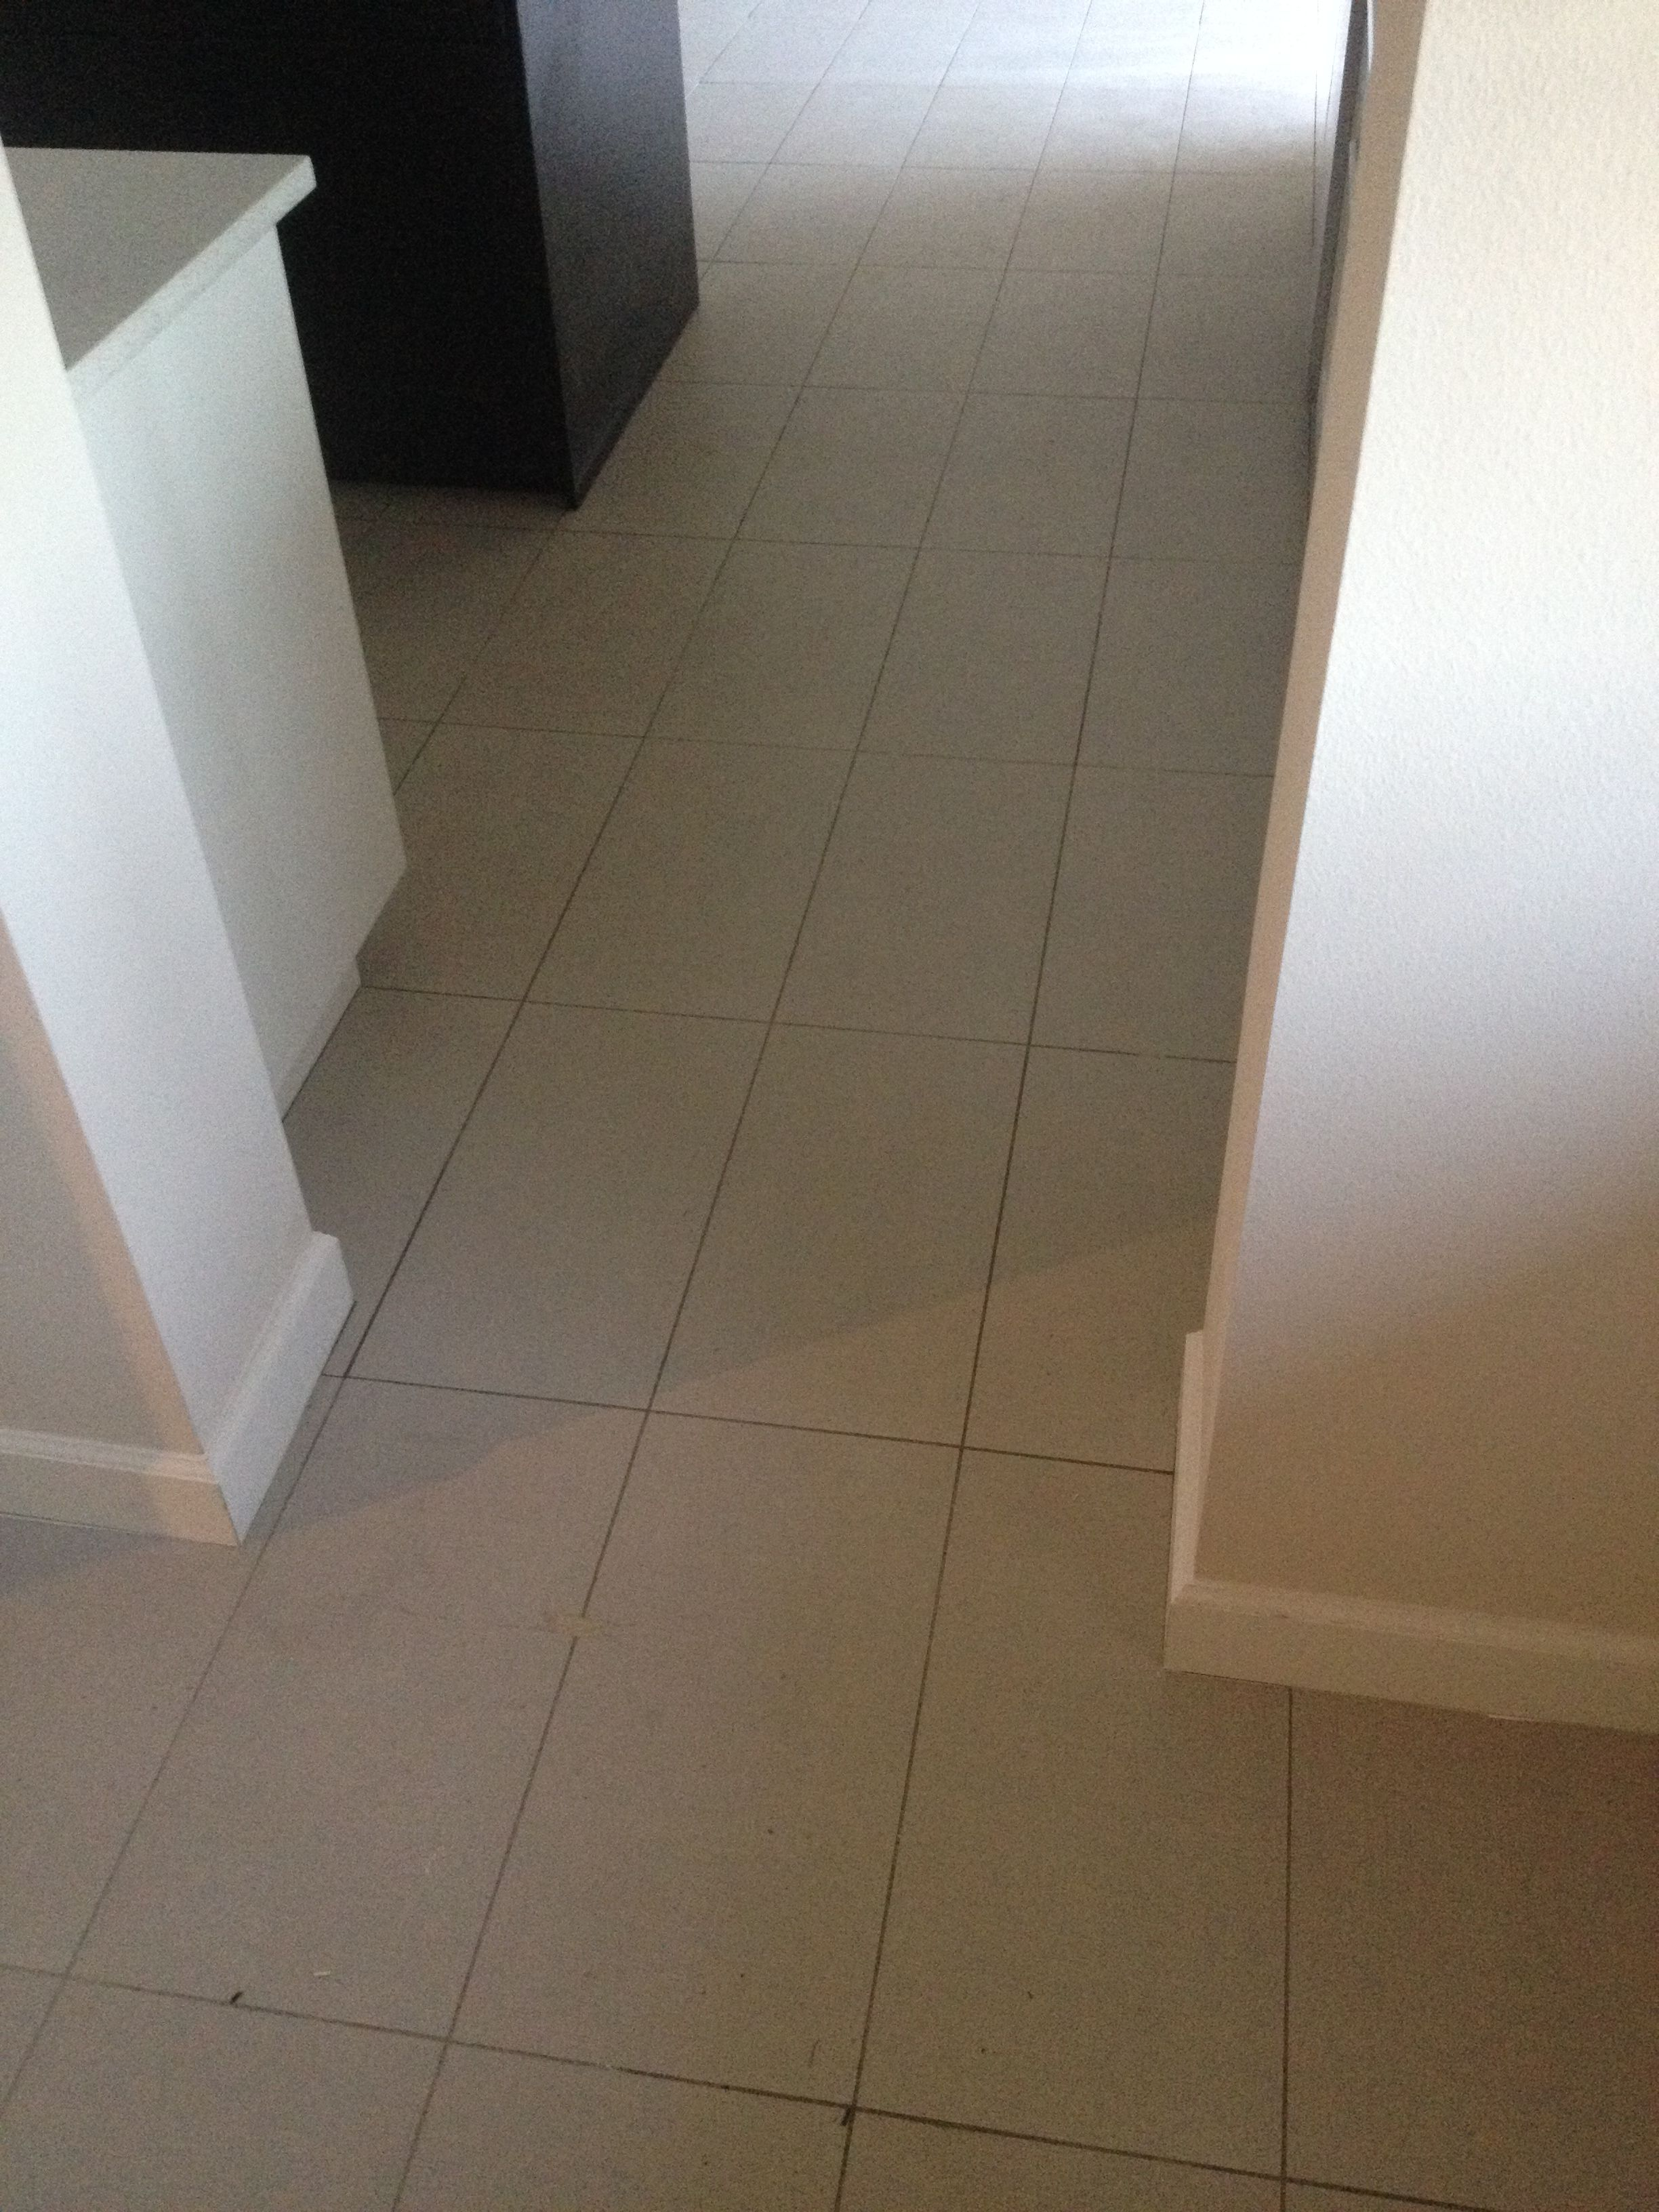 12 X 24 Porcelain Tile Straight Lay Stack Bond 12x24 Tile Tile Floor Hallway Tiles Floor